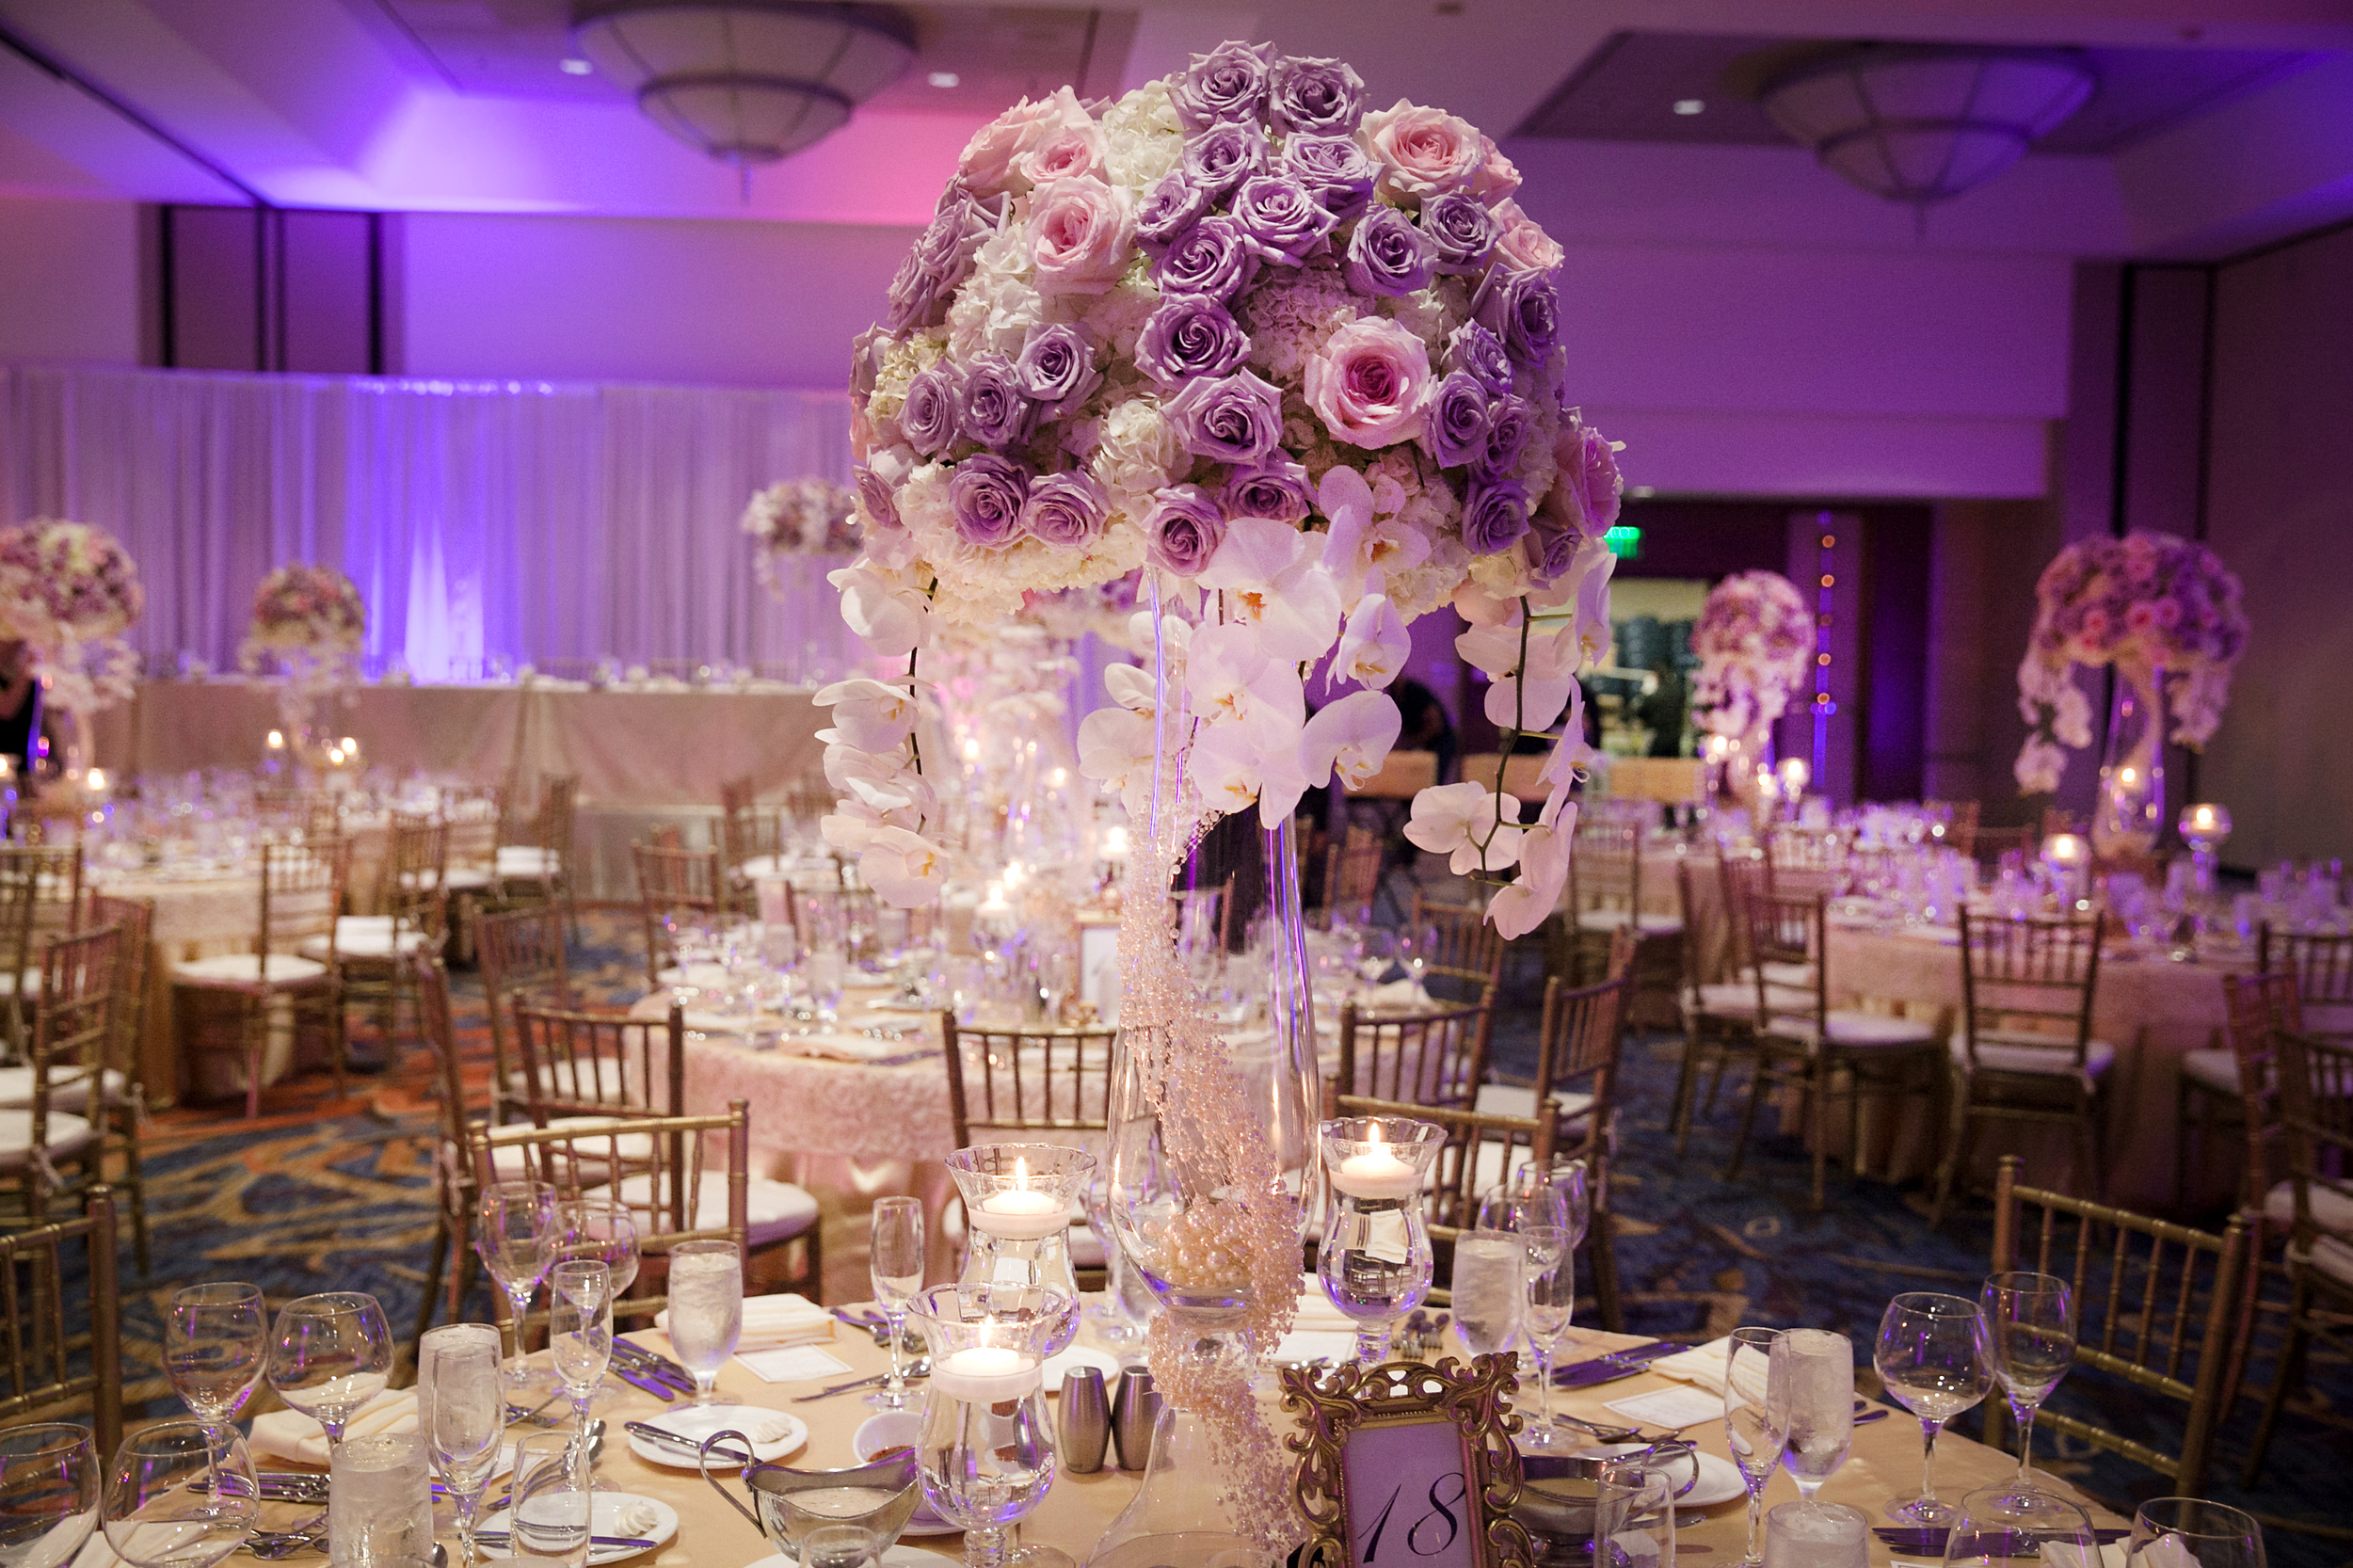 4_Lavender and pink centerpiece.jpg